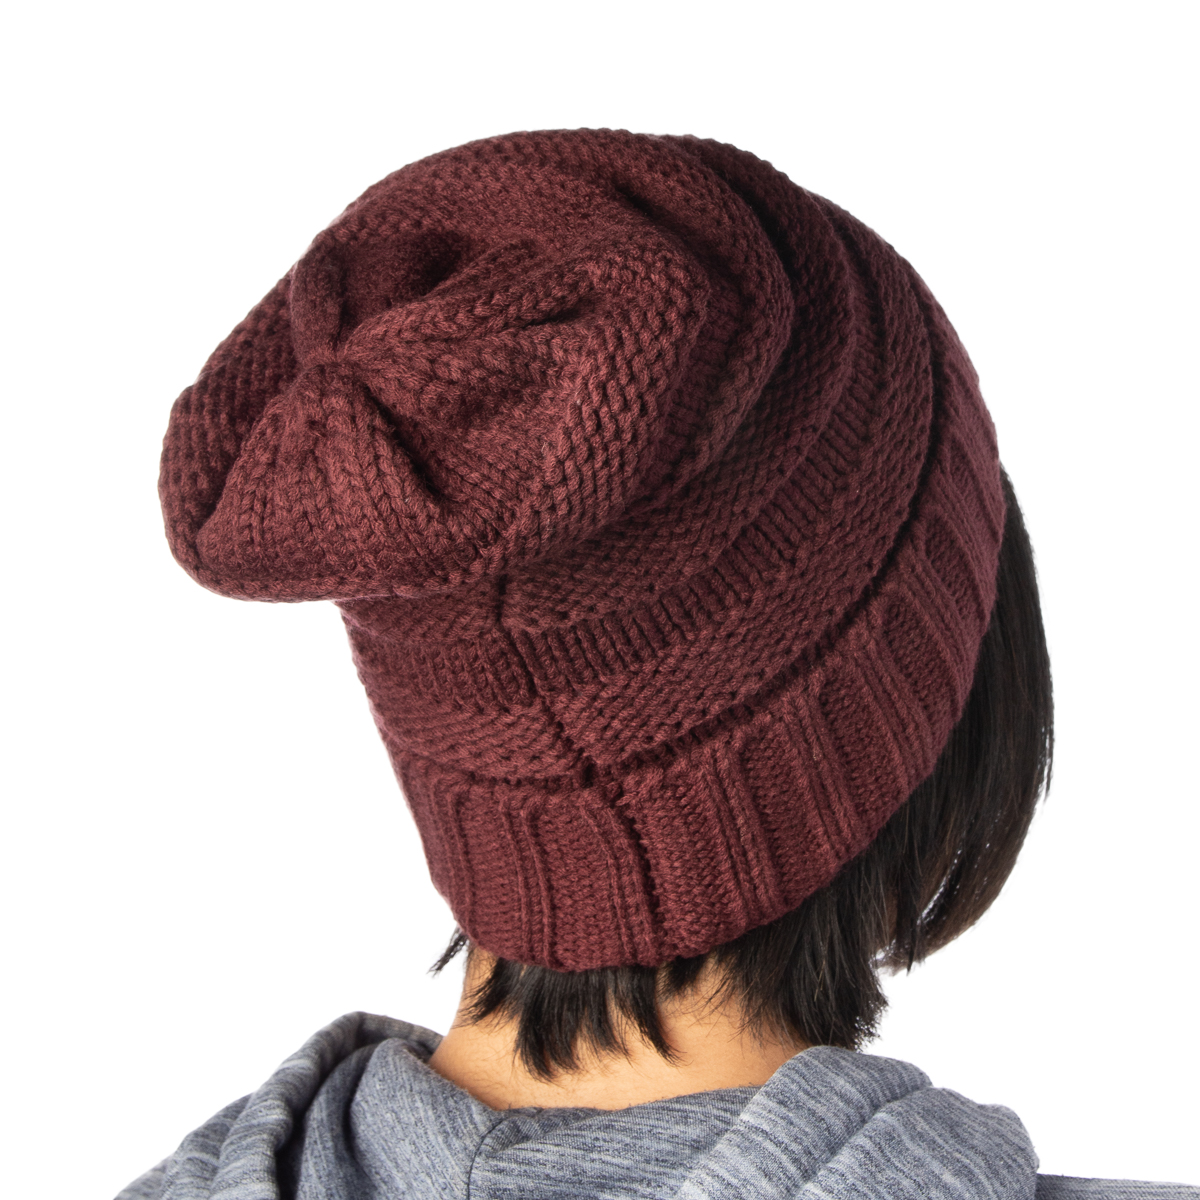 22ffeeb5b52 Womens Slouchy Ribbed Knit Chunky Beanie Winter Hat Warm Cute ...